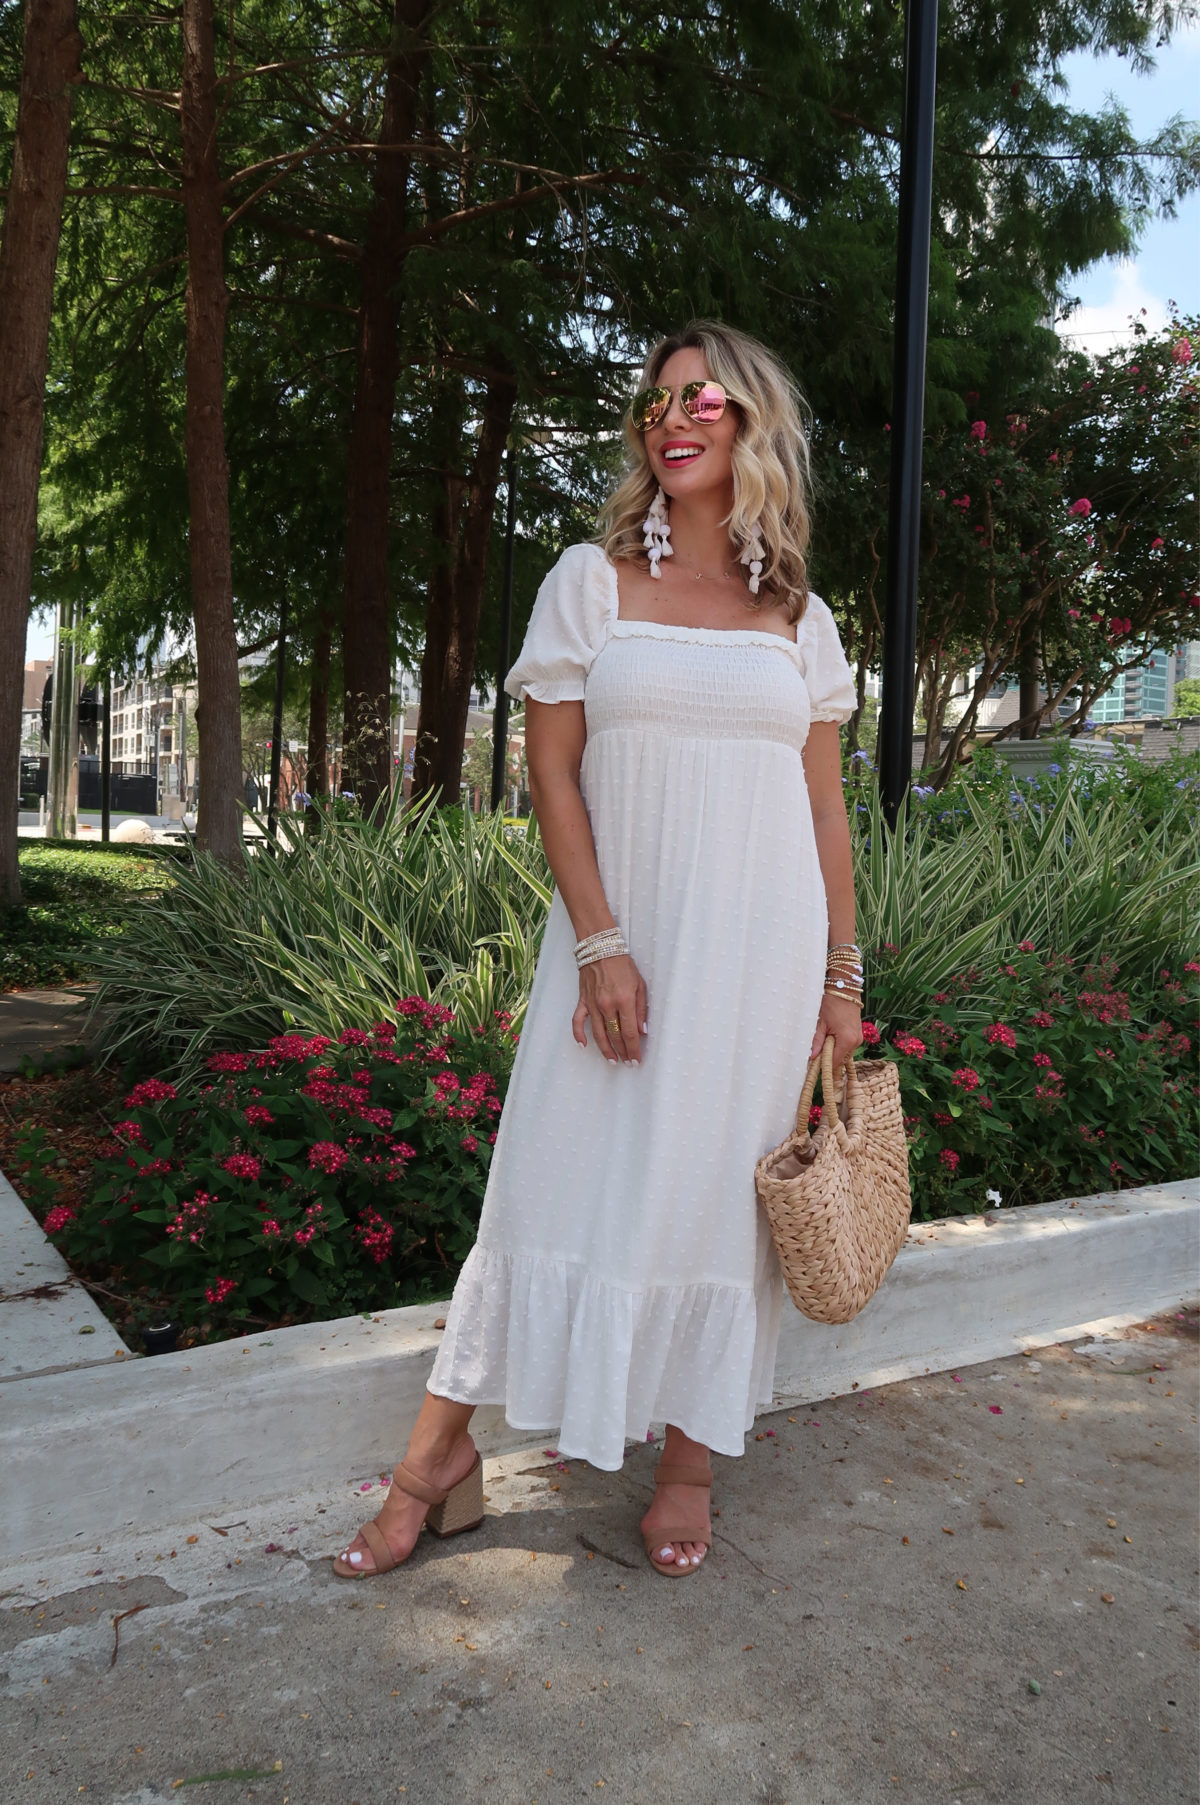 New Summer Styles, Gibson and Nordstrom, White Clip Dot Dress, Sandals, Woven Bag